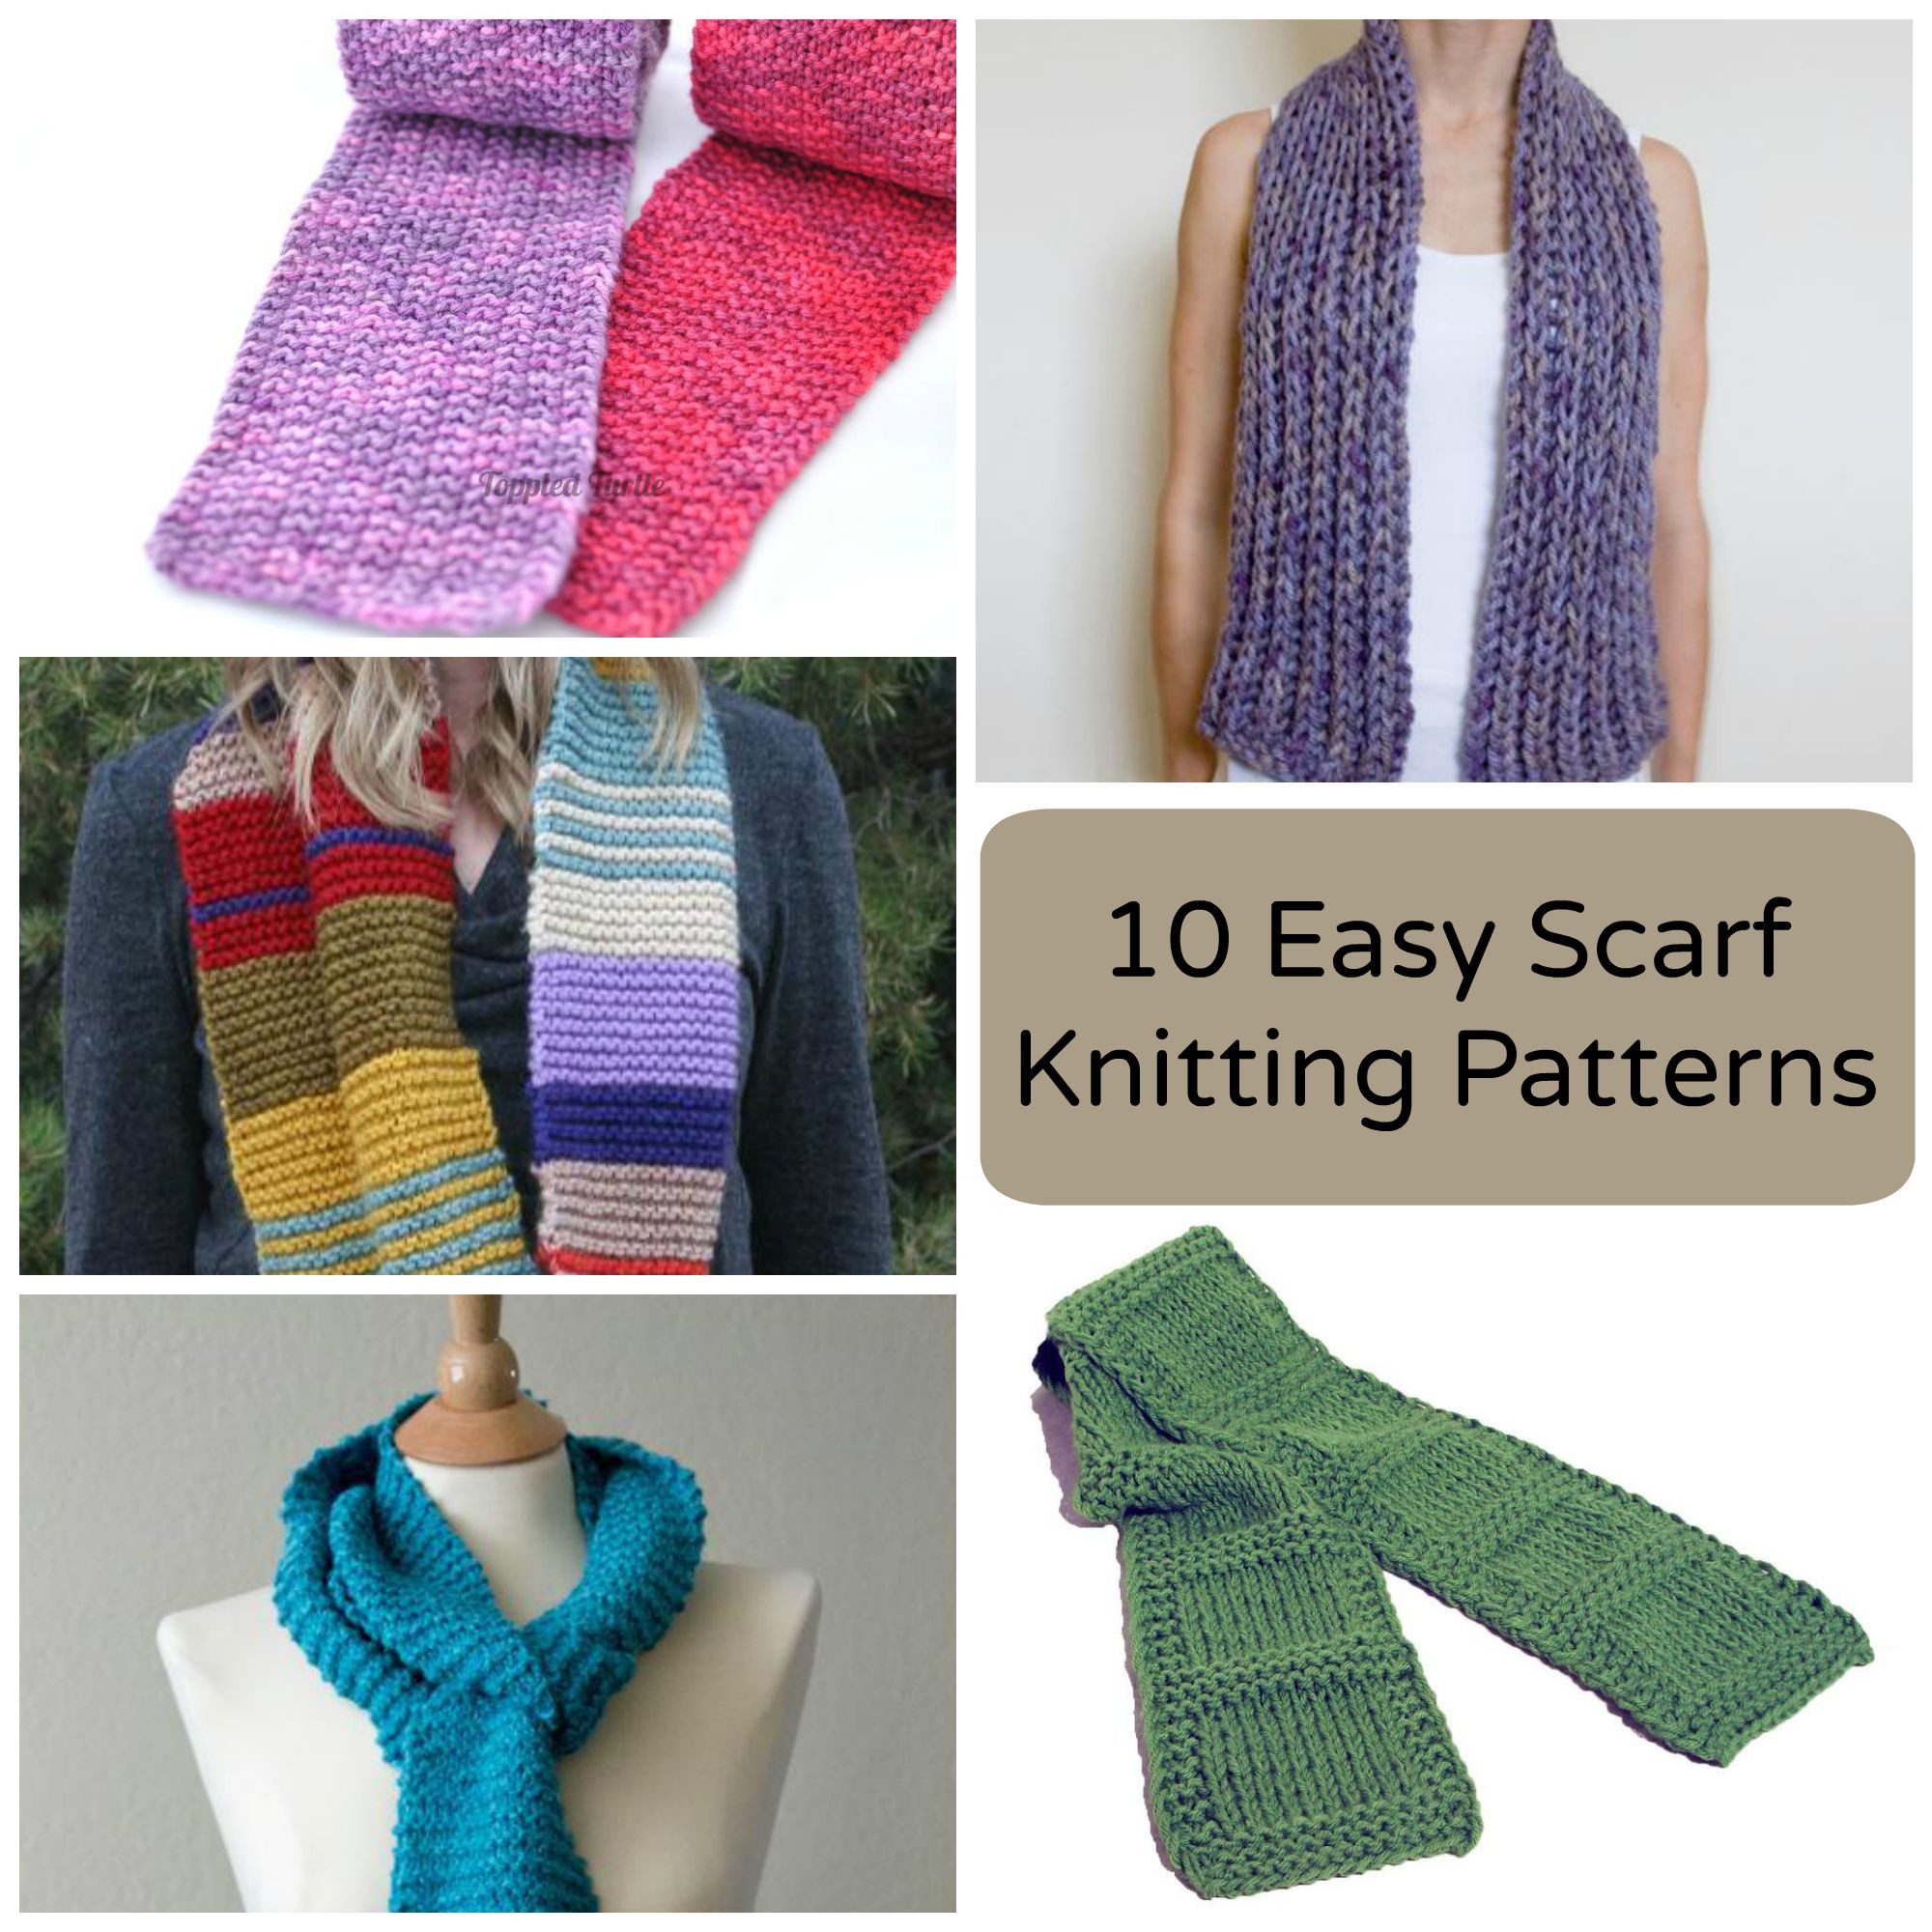 Inspirational Beginner Scarf Knitting Patterns Crochet Scarf Patterns for Beginners Of Perfect 47 Pictures Crochet Scarf Patterns for Beginners